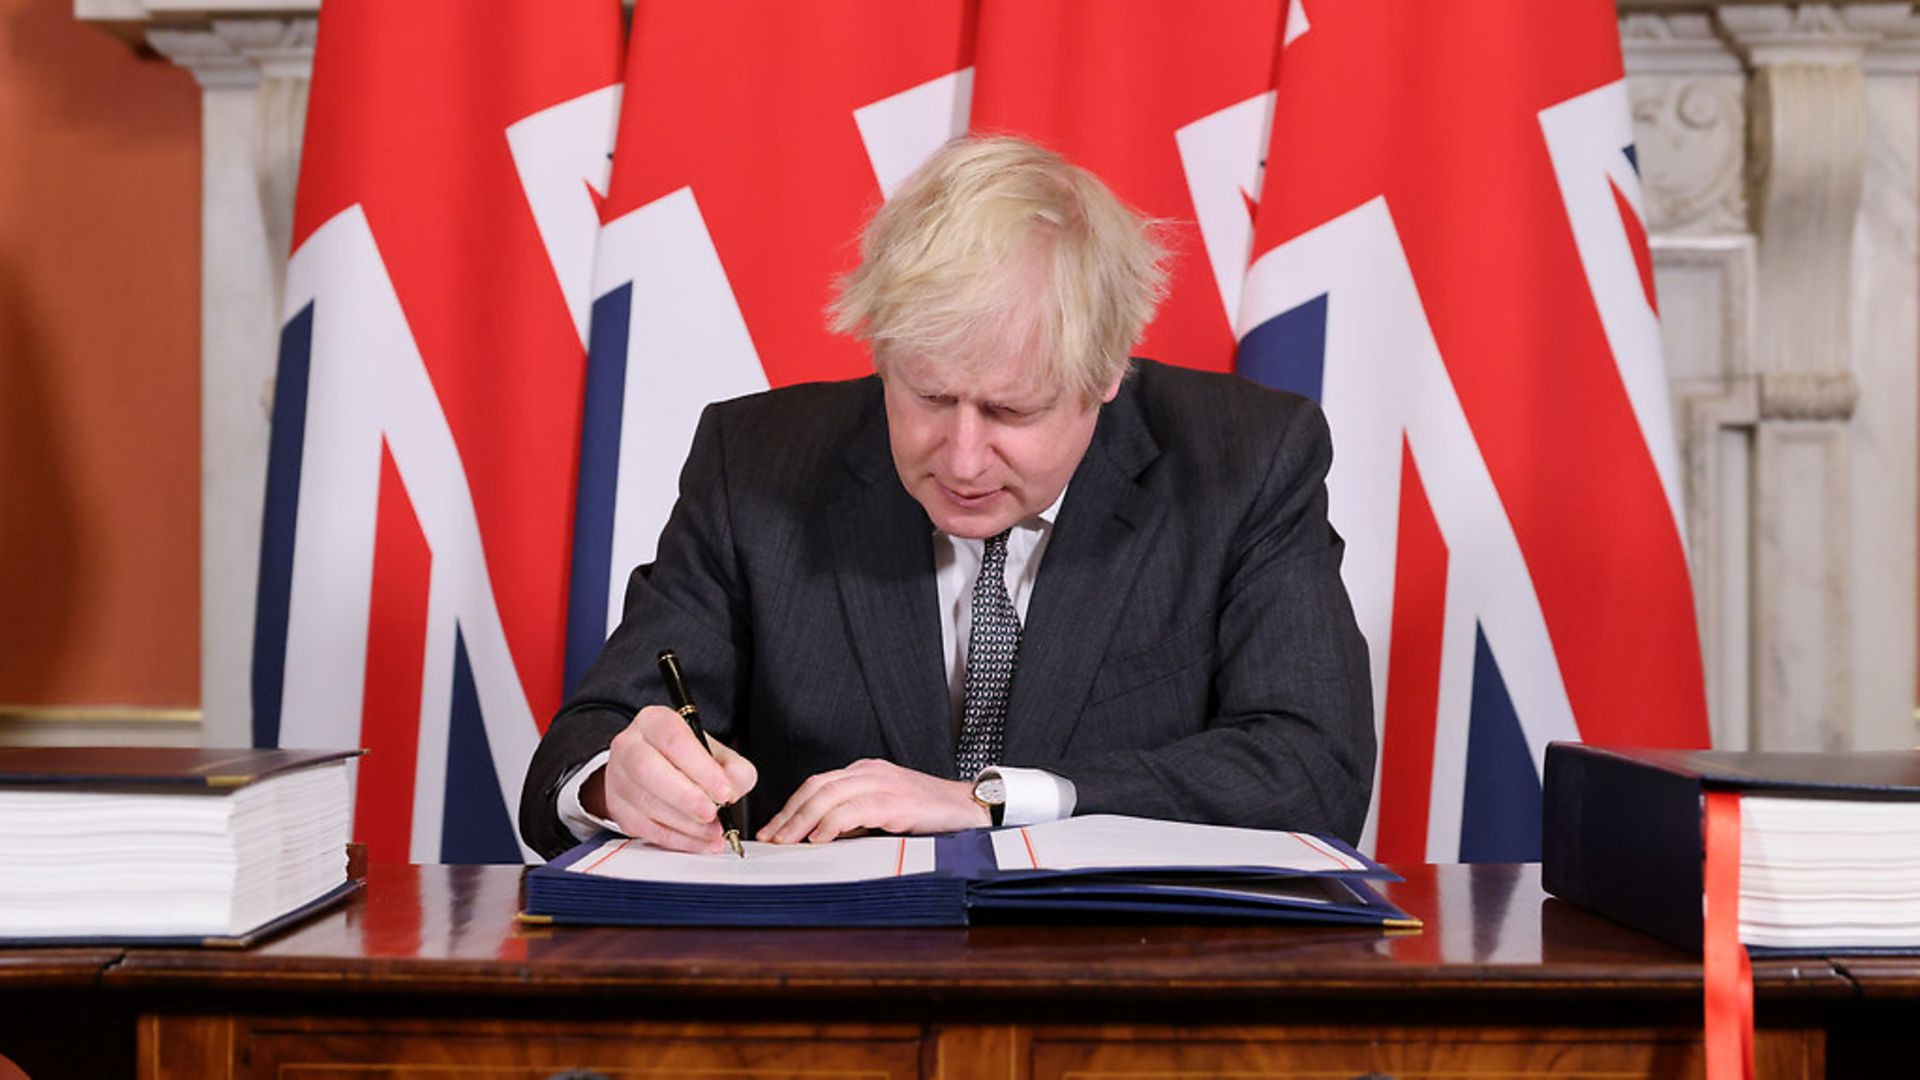 Boris Johnson signs the Brexit agreement - Credit: Andrew Parsons / No10 Downing St